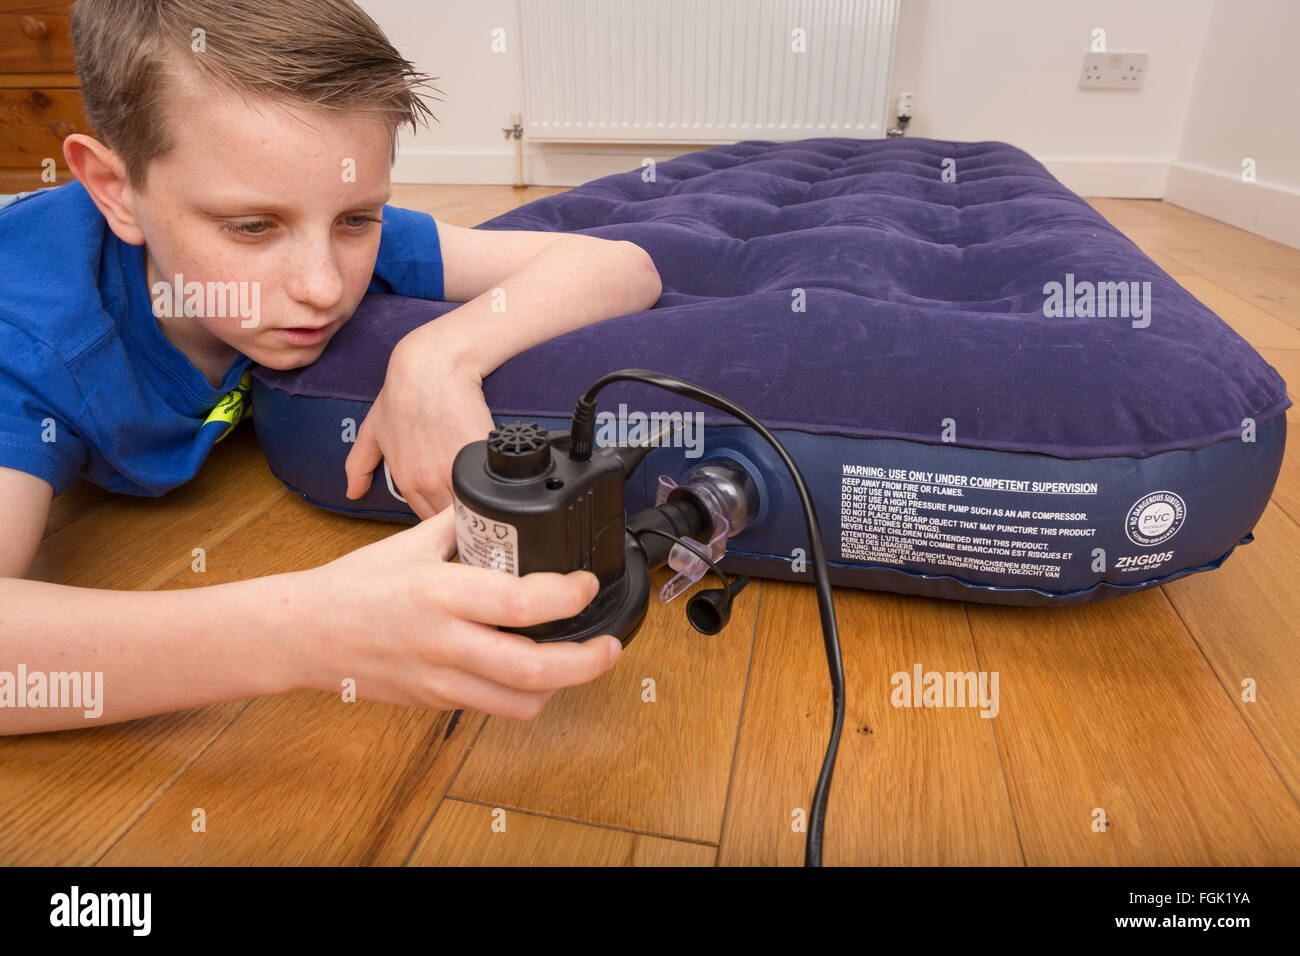 An air bed being inflated with an electric pump - Stock Image